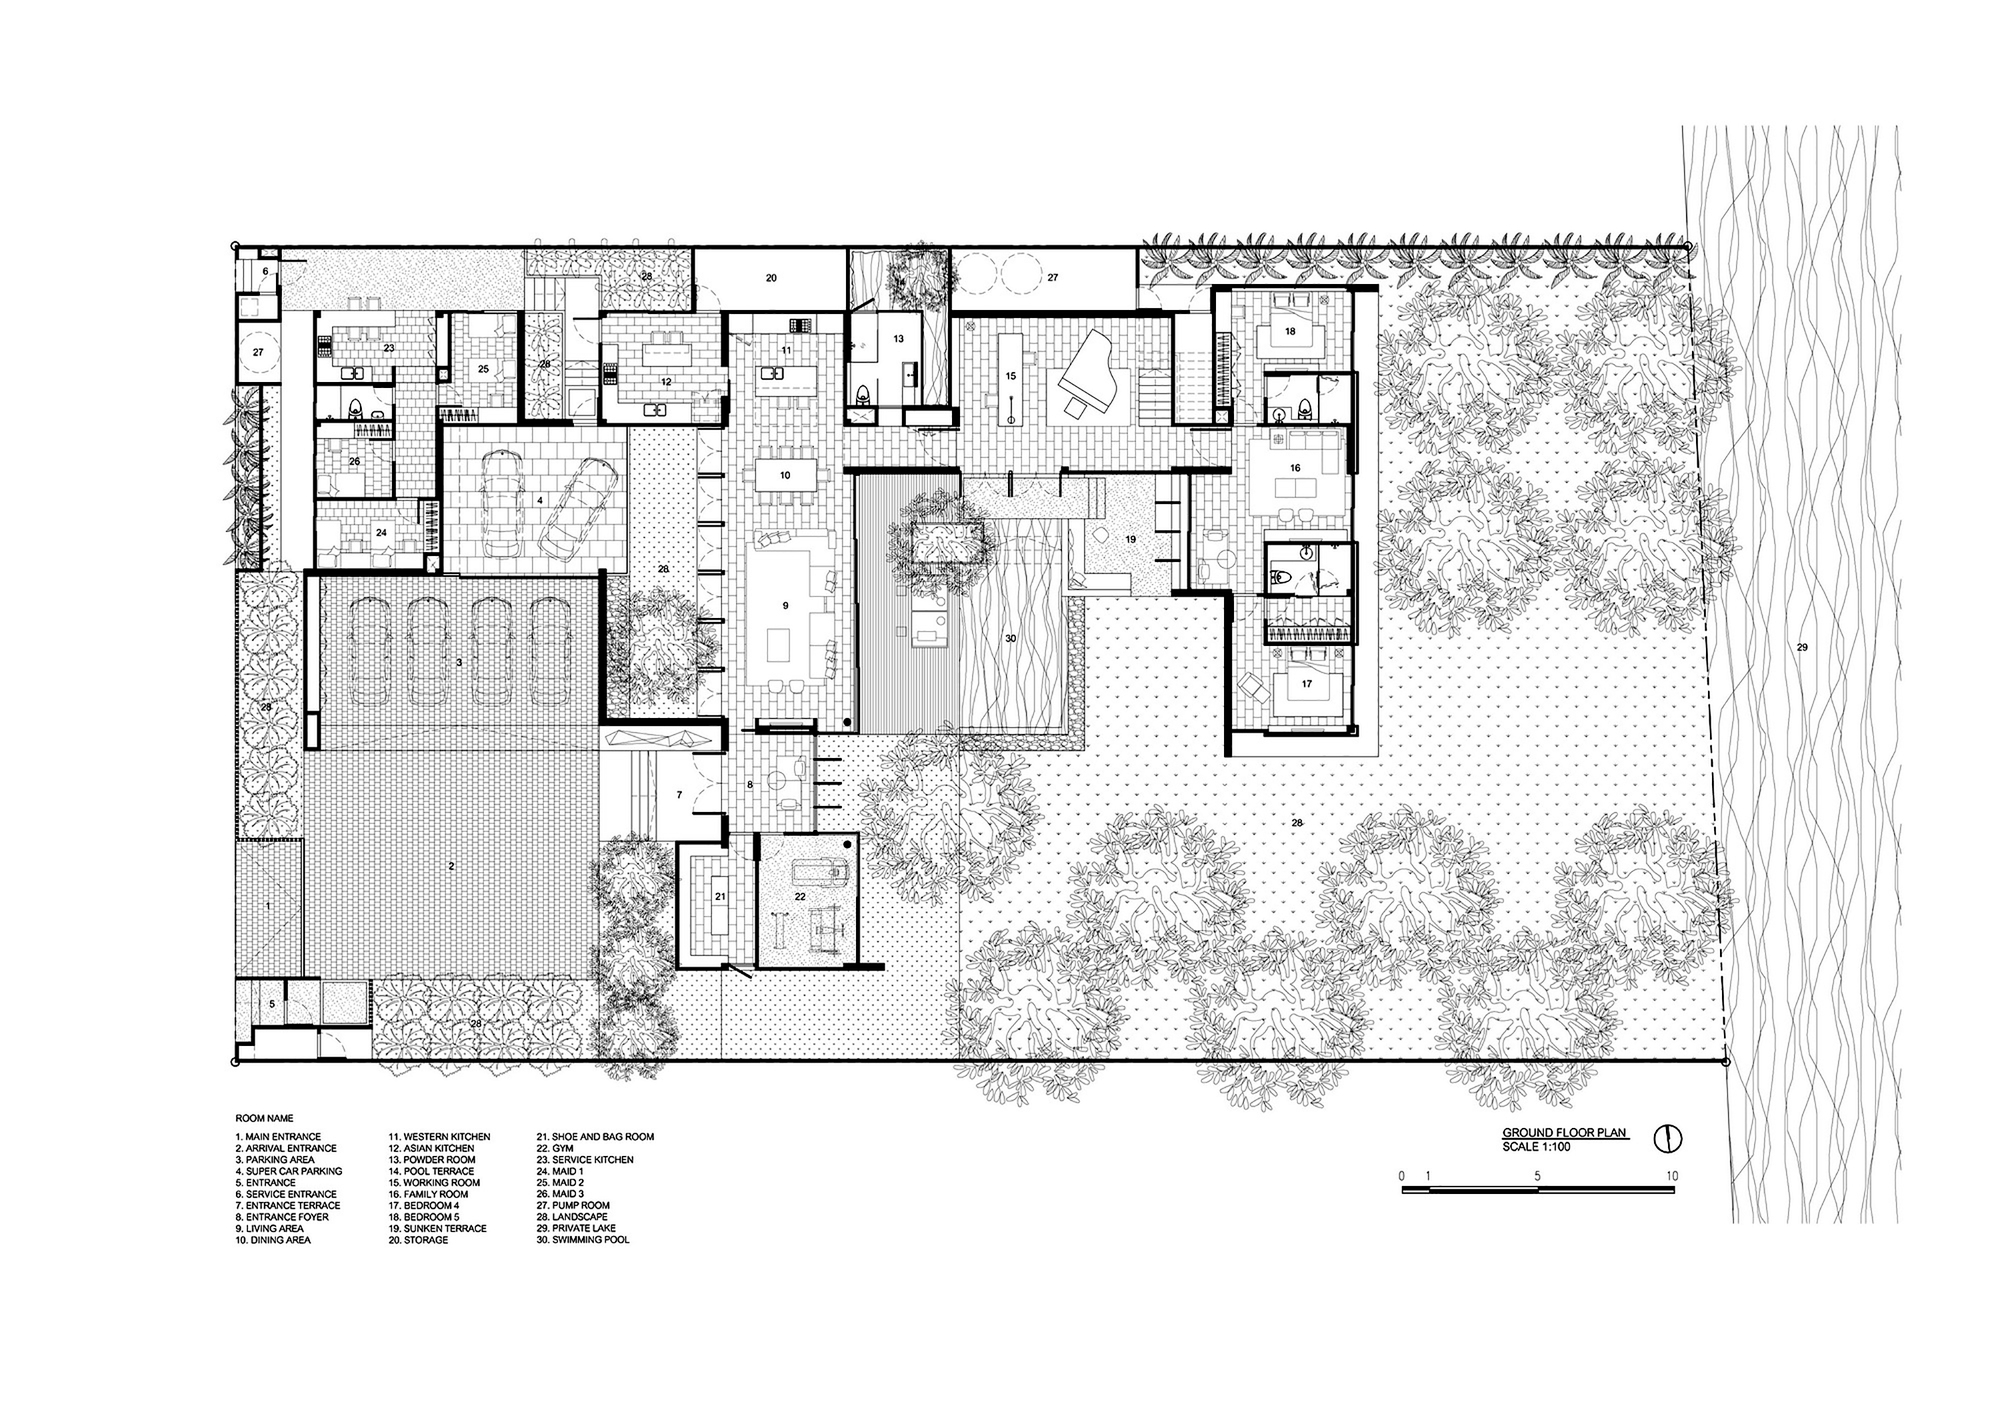 How To Draw Stairs In A Floor Plan 画廊 泰国lsr113 别墅 Ayutt And Associates Design 19